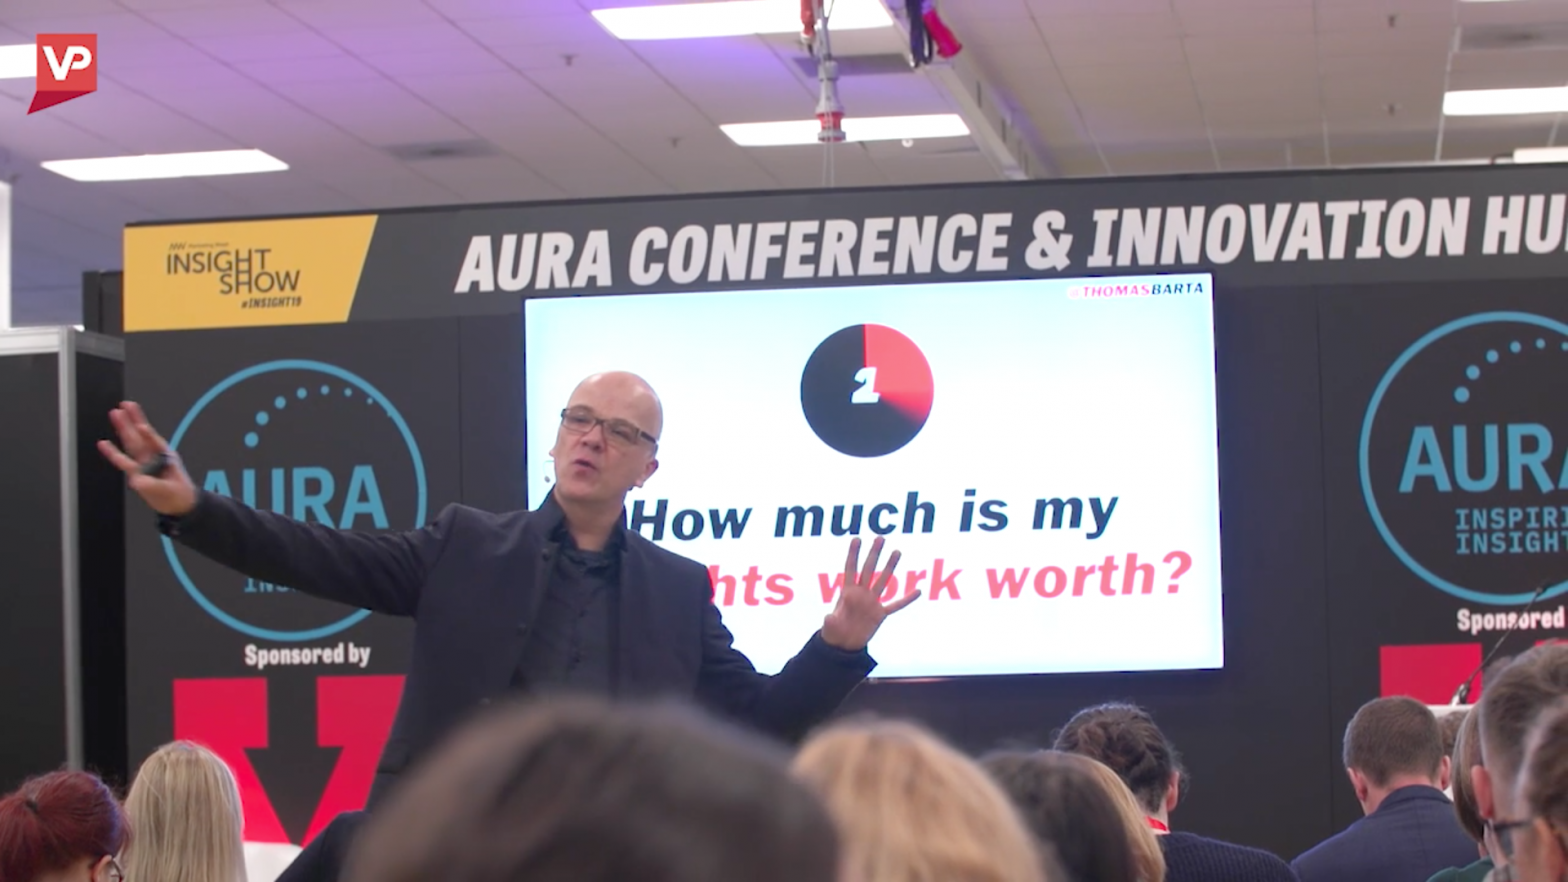 Image of the Aura stage at the Insight show.